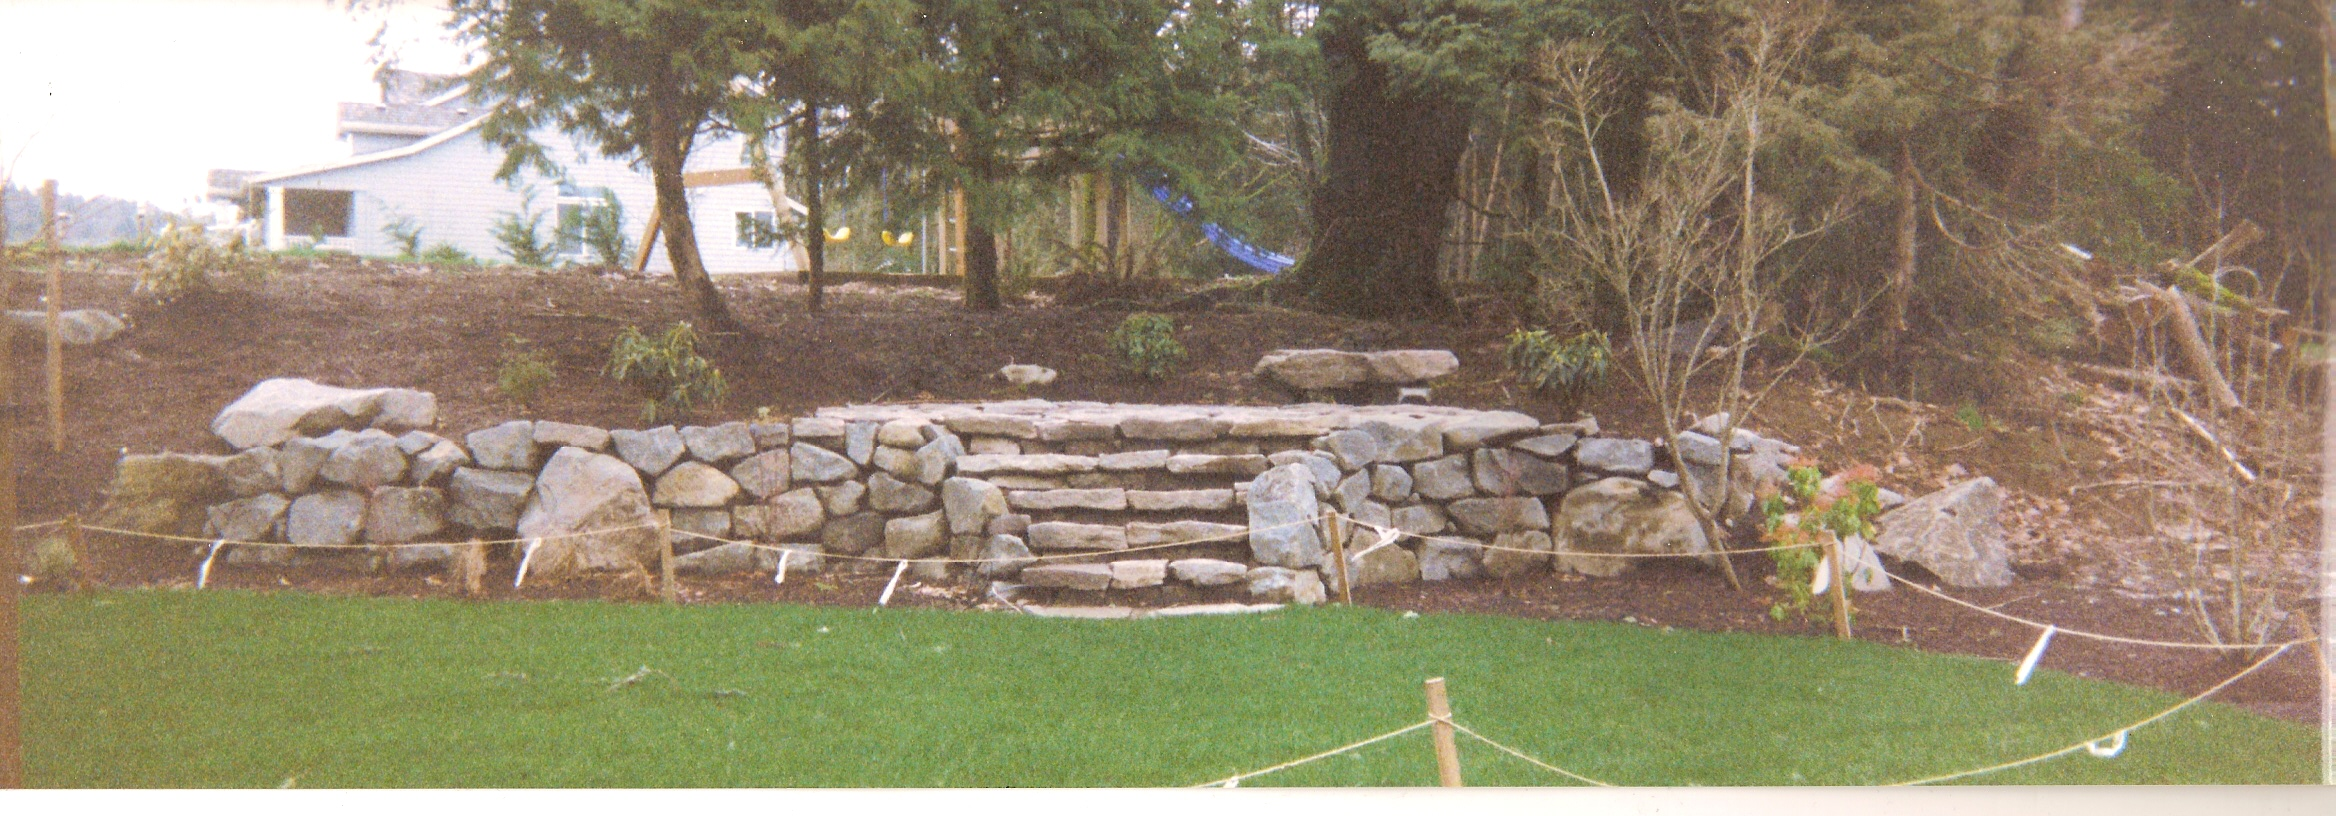 Garden Design With Rocks/Boulders Steve Snedekerus Landscaping And Gardening  Blog With Landscape Backyard From